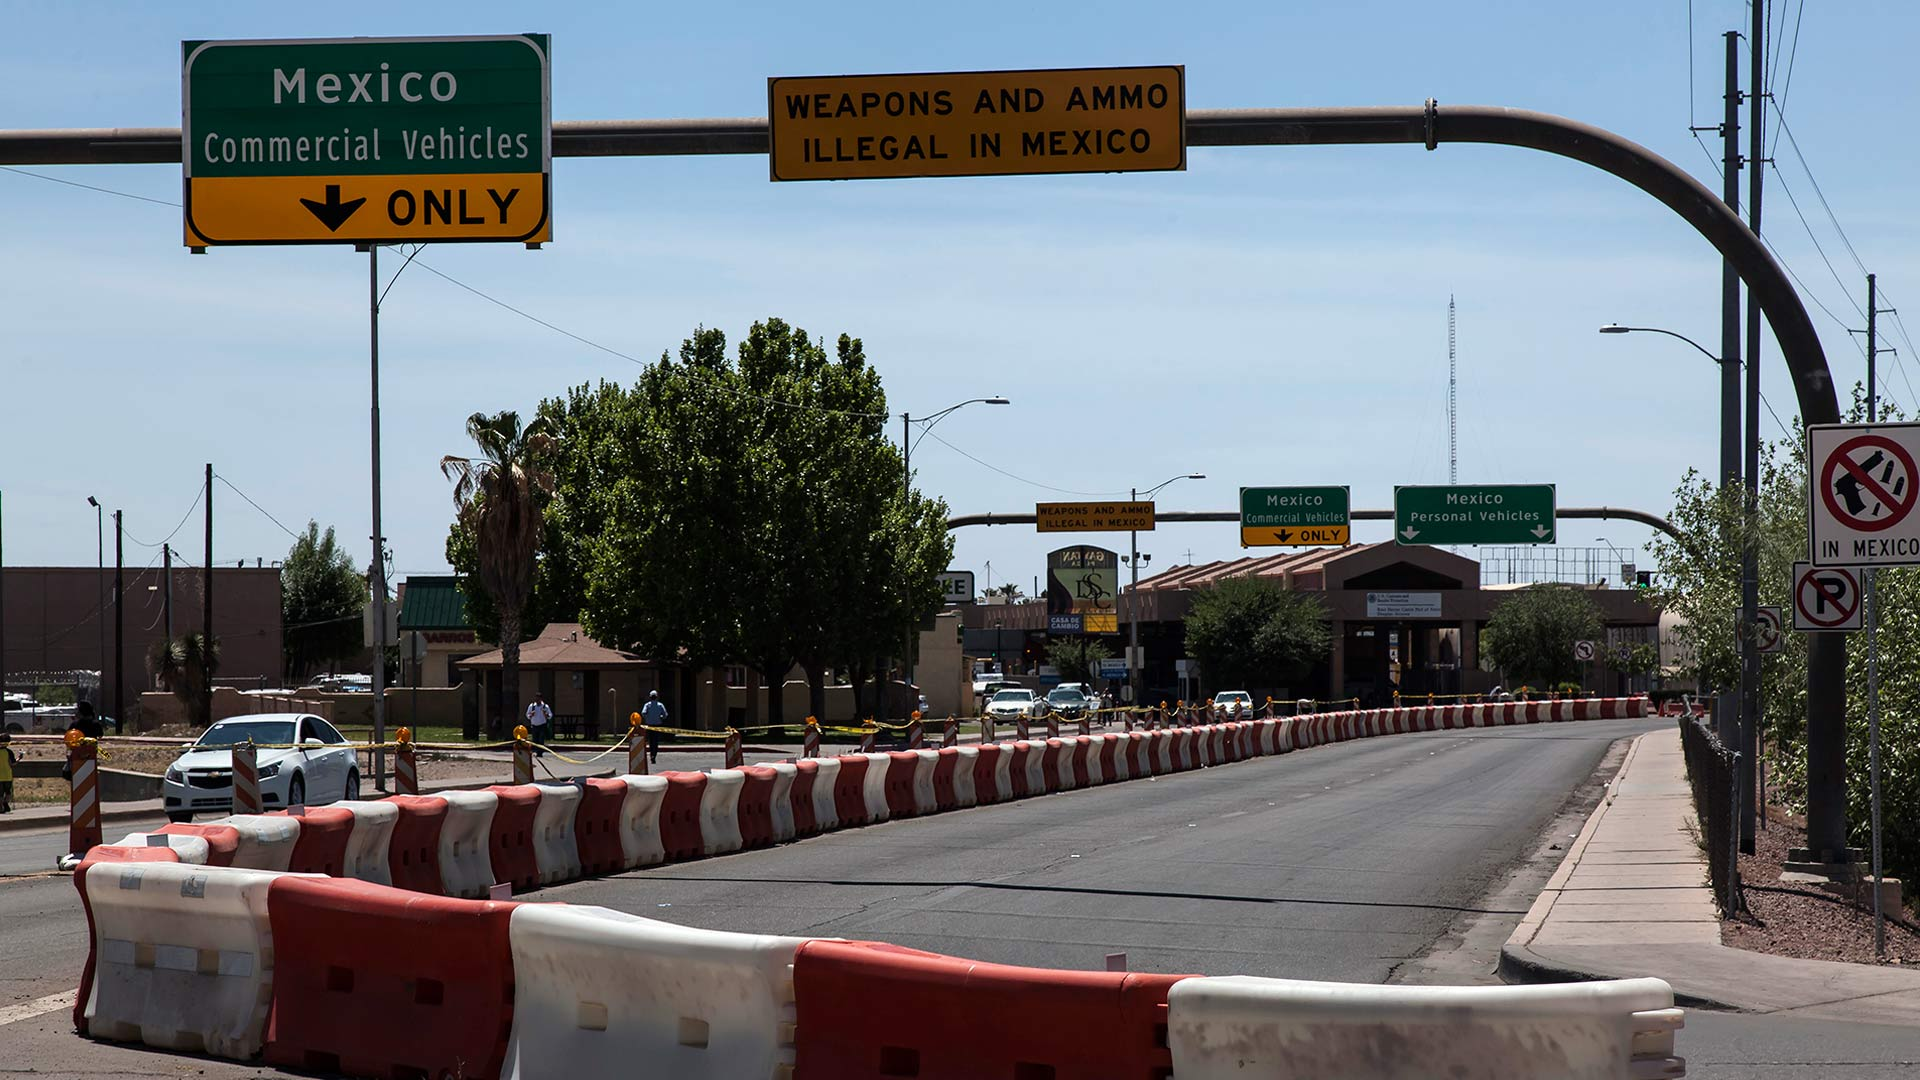 The port of entry in Douglas, Arizona in April 2016.